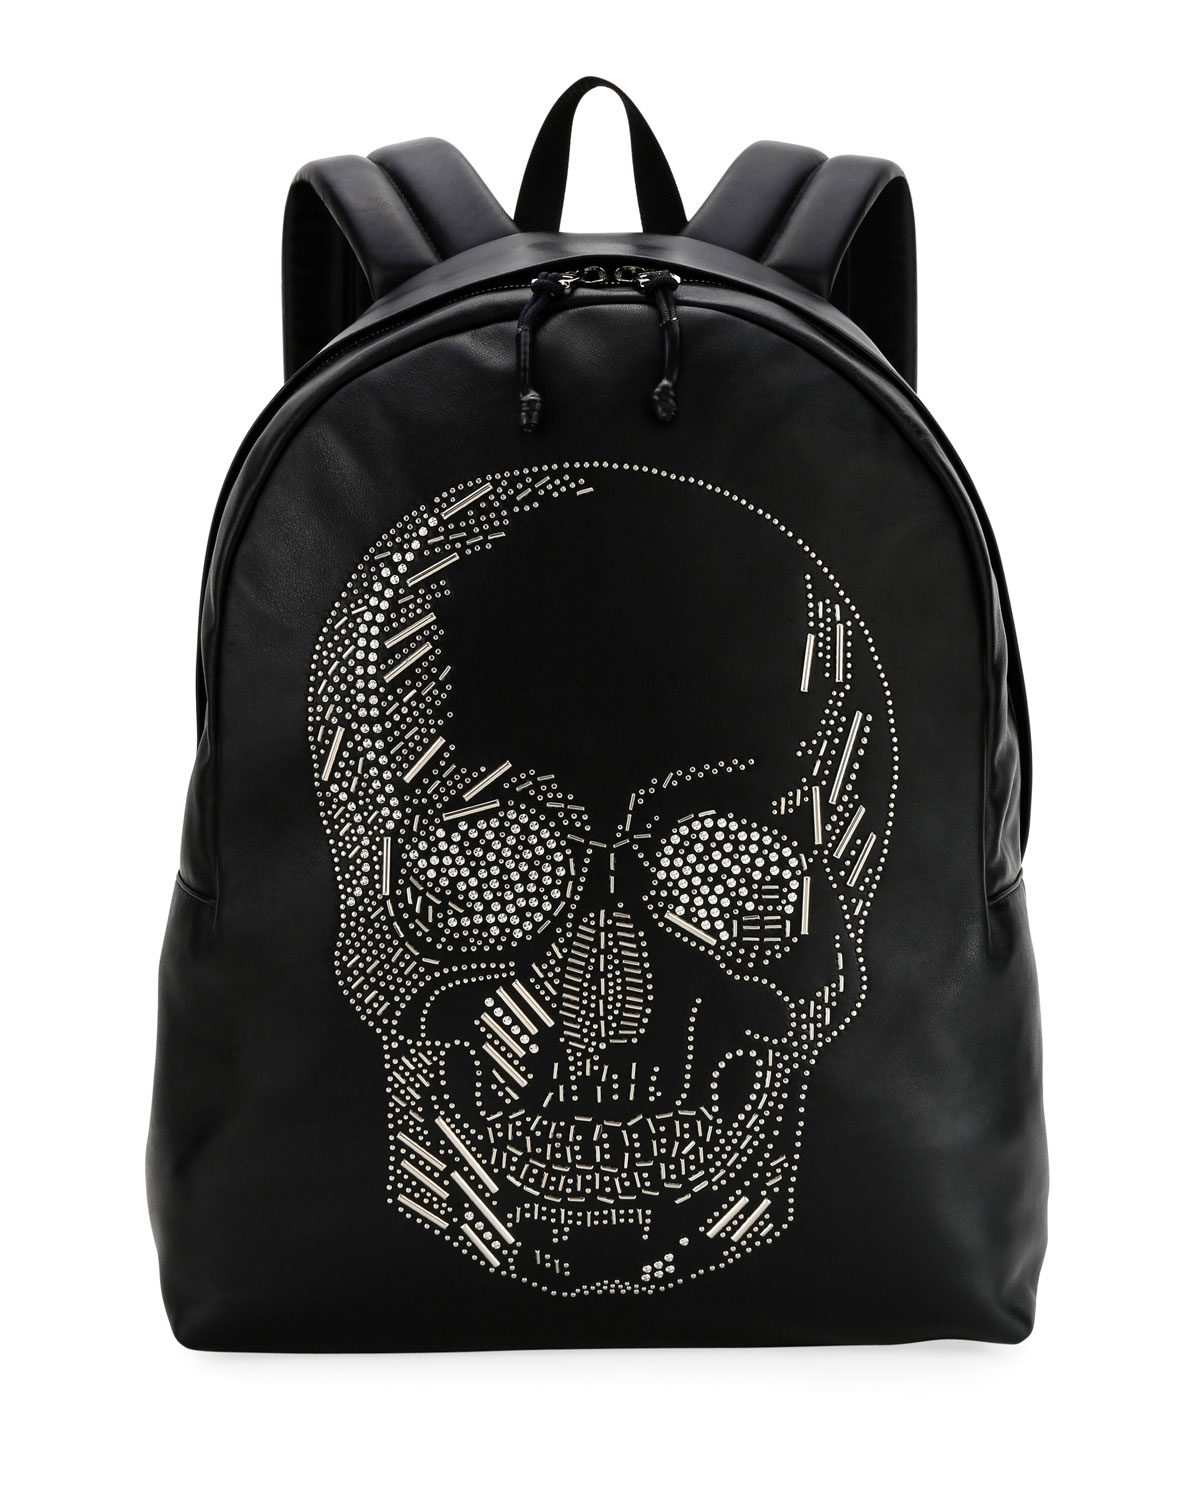 Kidorable Pirate Chest Backpack Child New NWT Skull